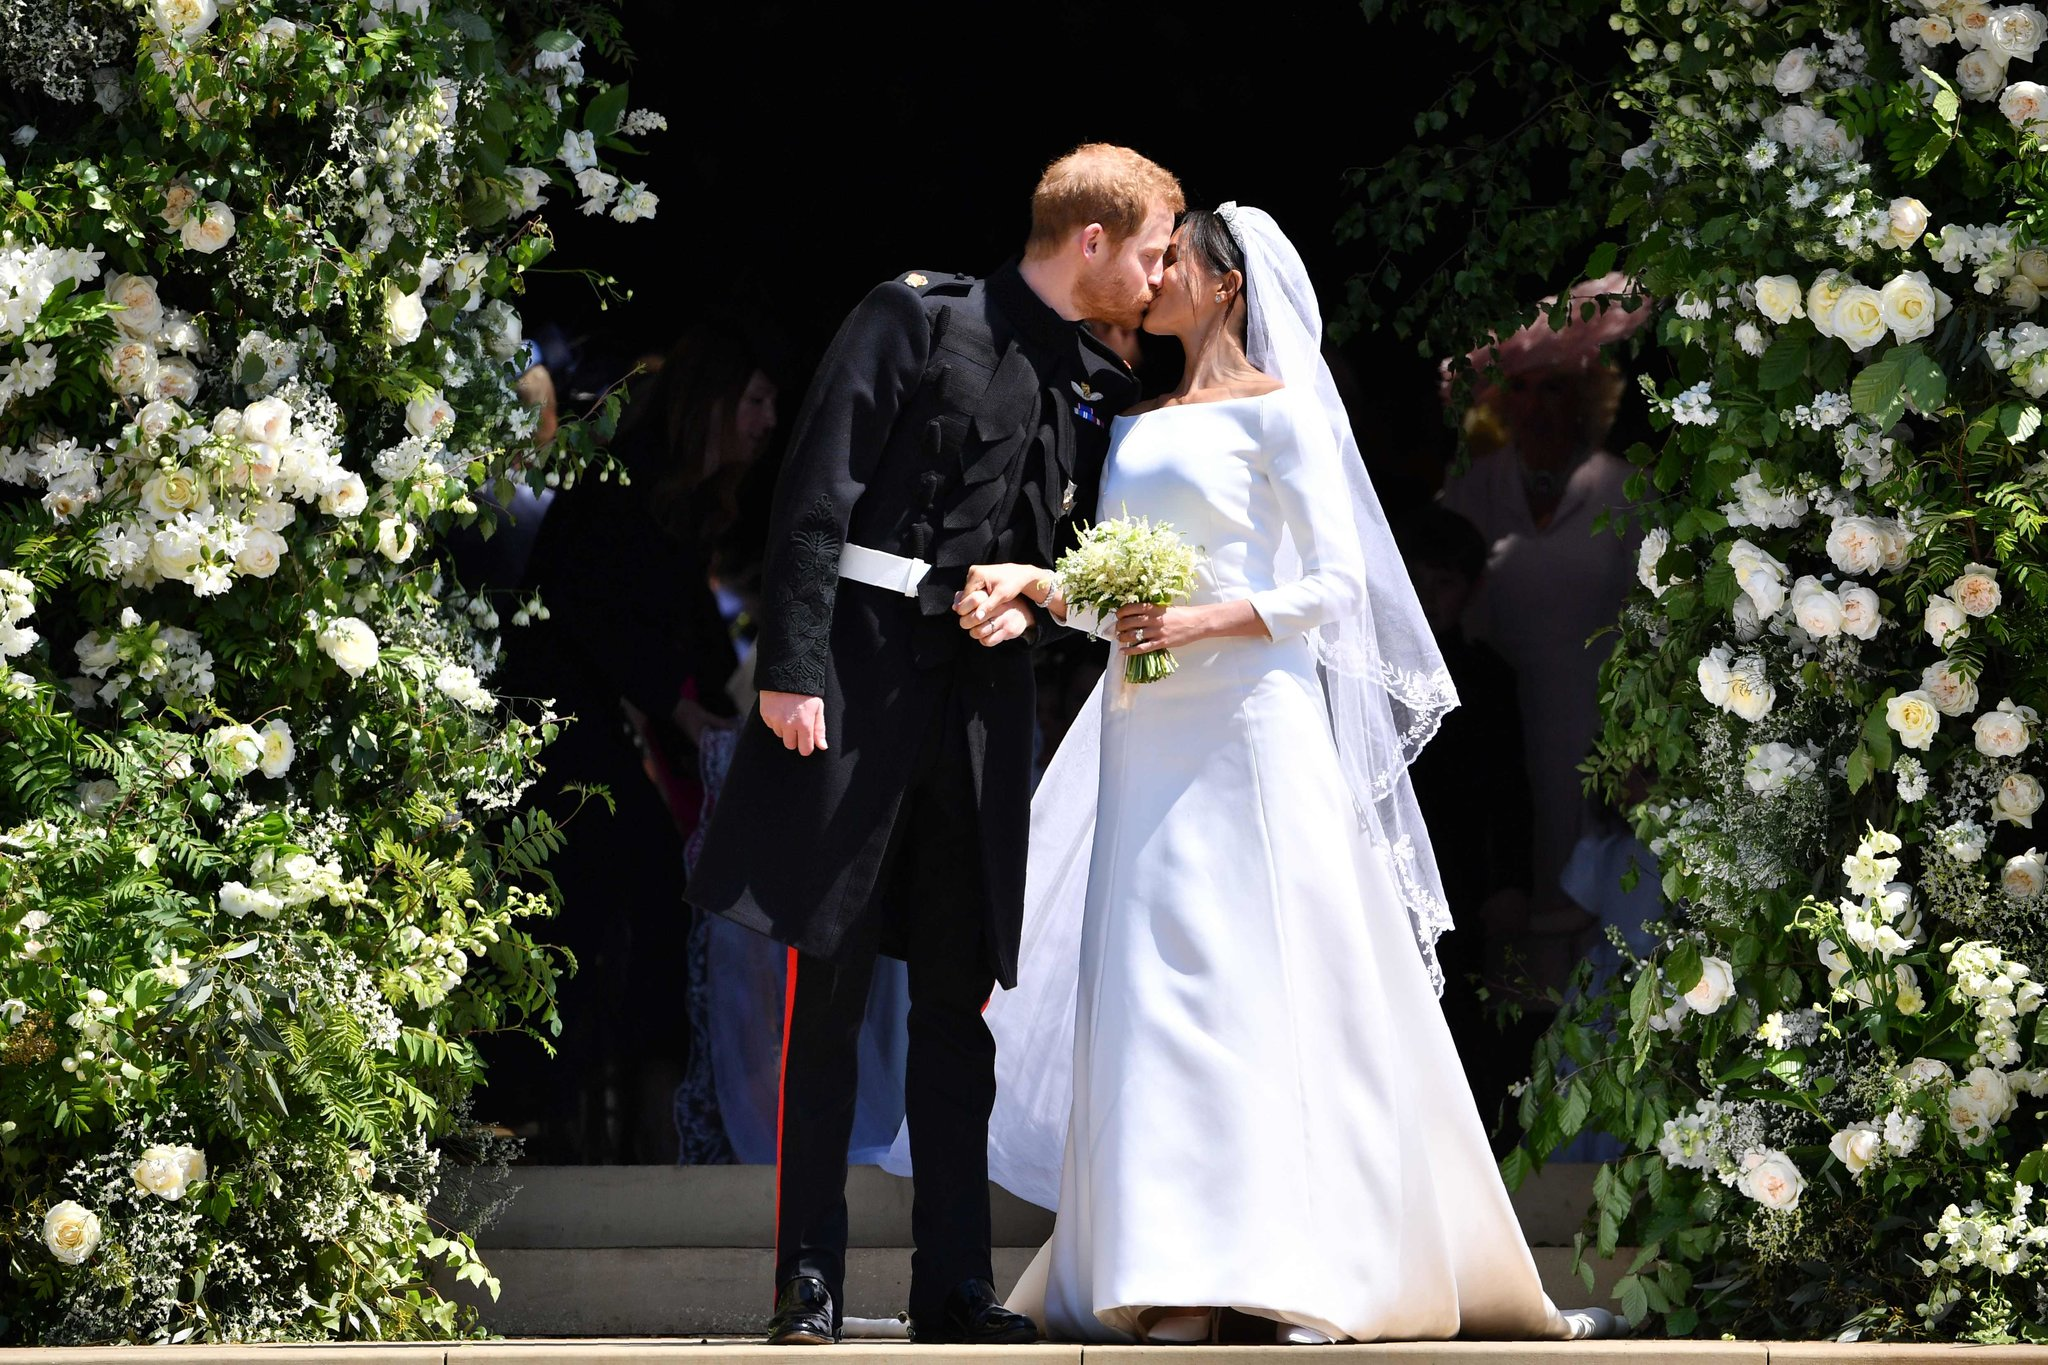 Royal Wedding Time In Us.A Small Time Wedding Planner S Big Thoughts On A Royal Wedding